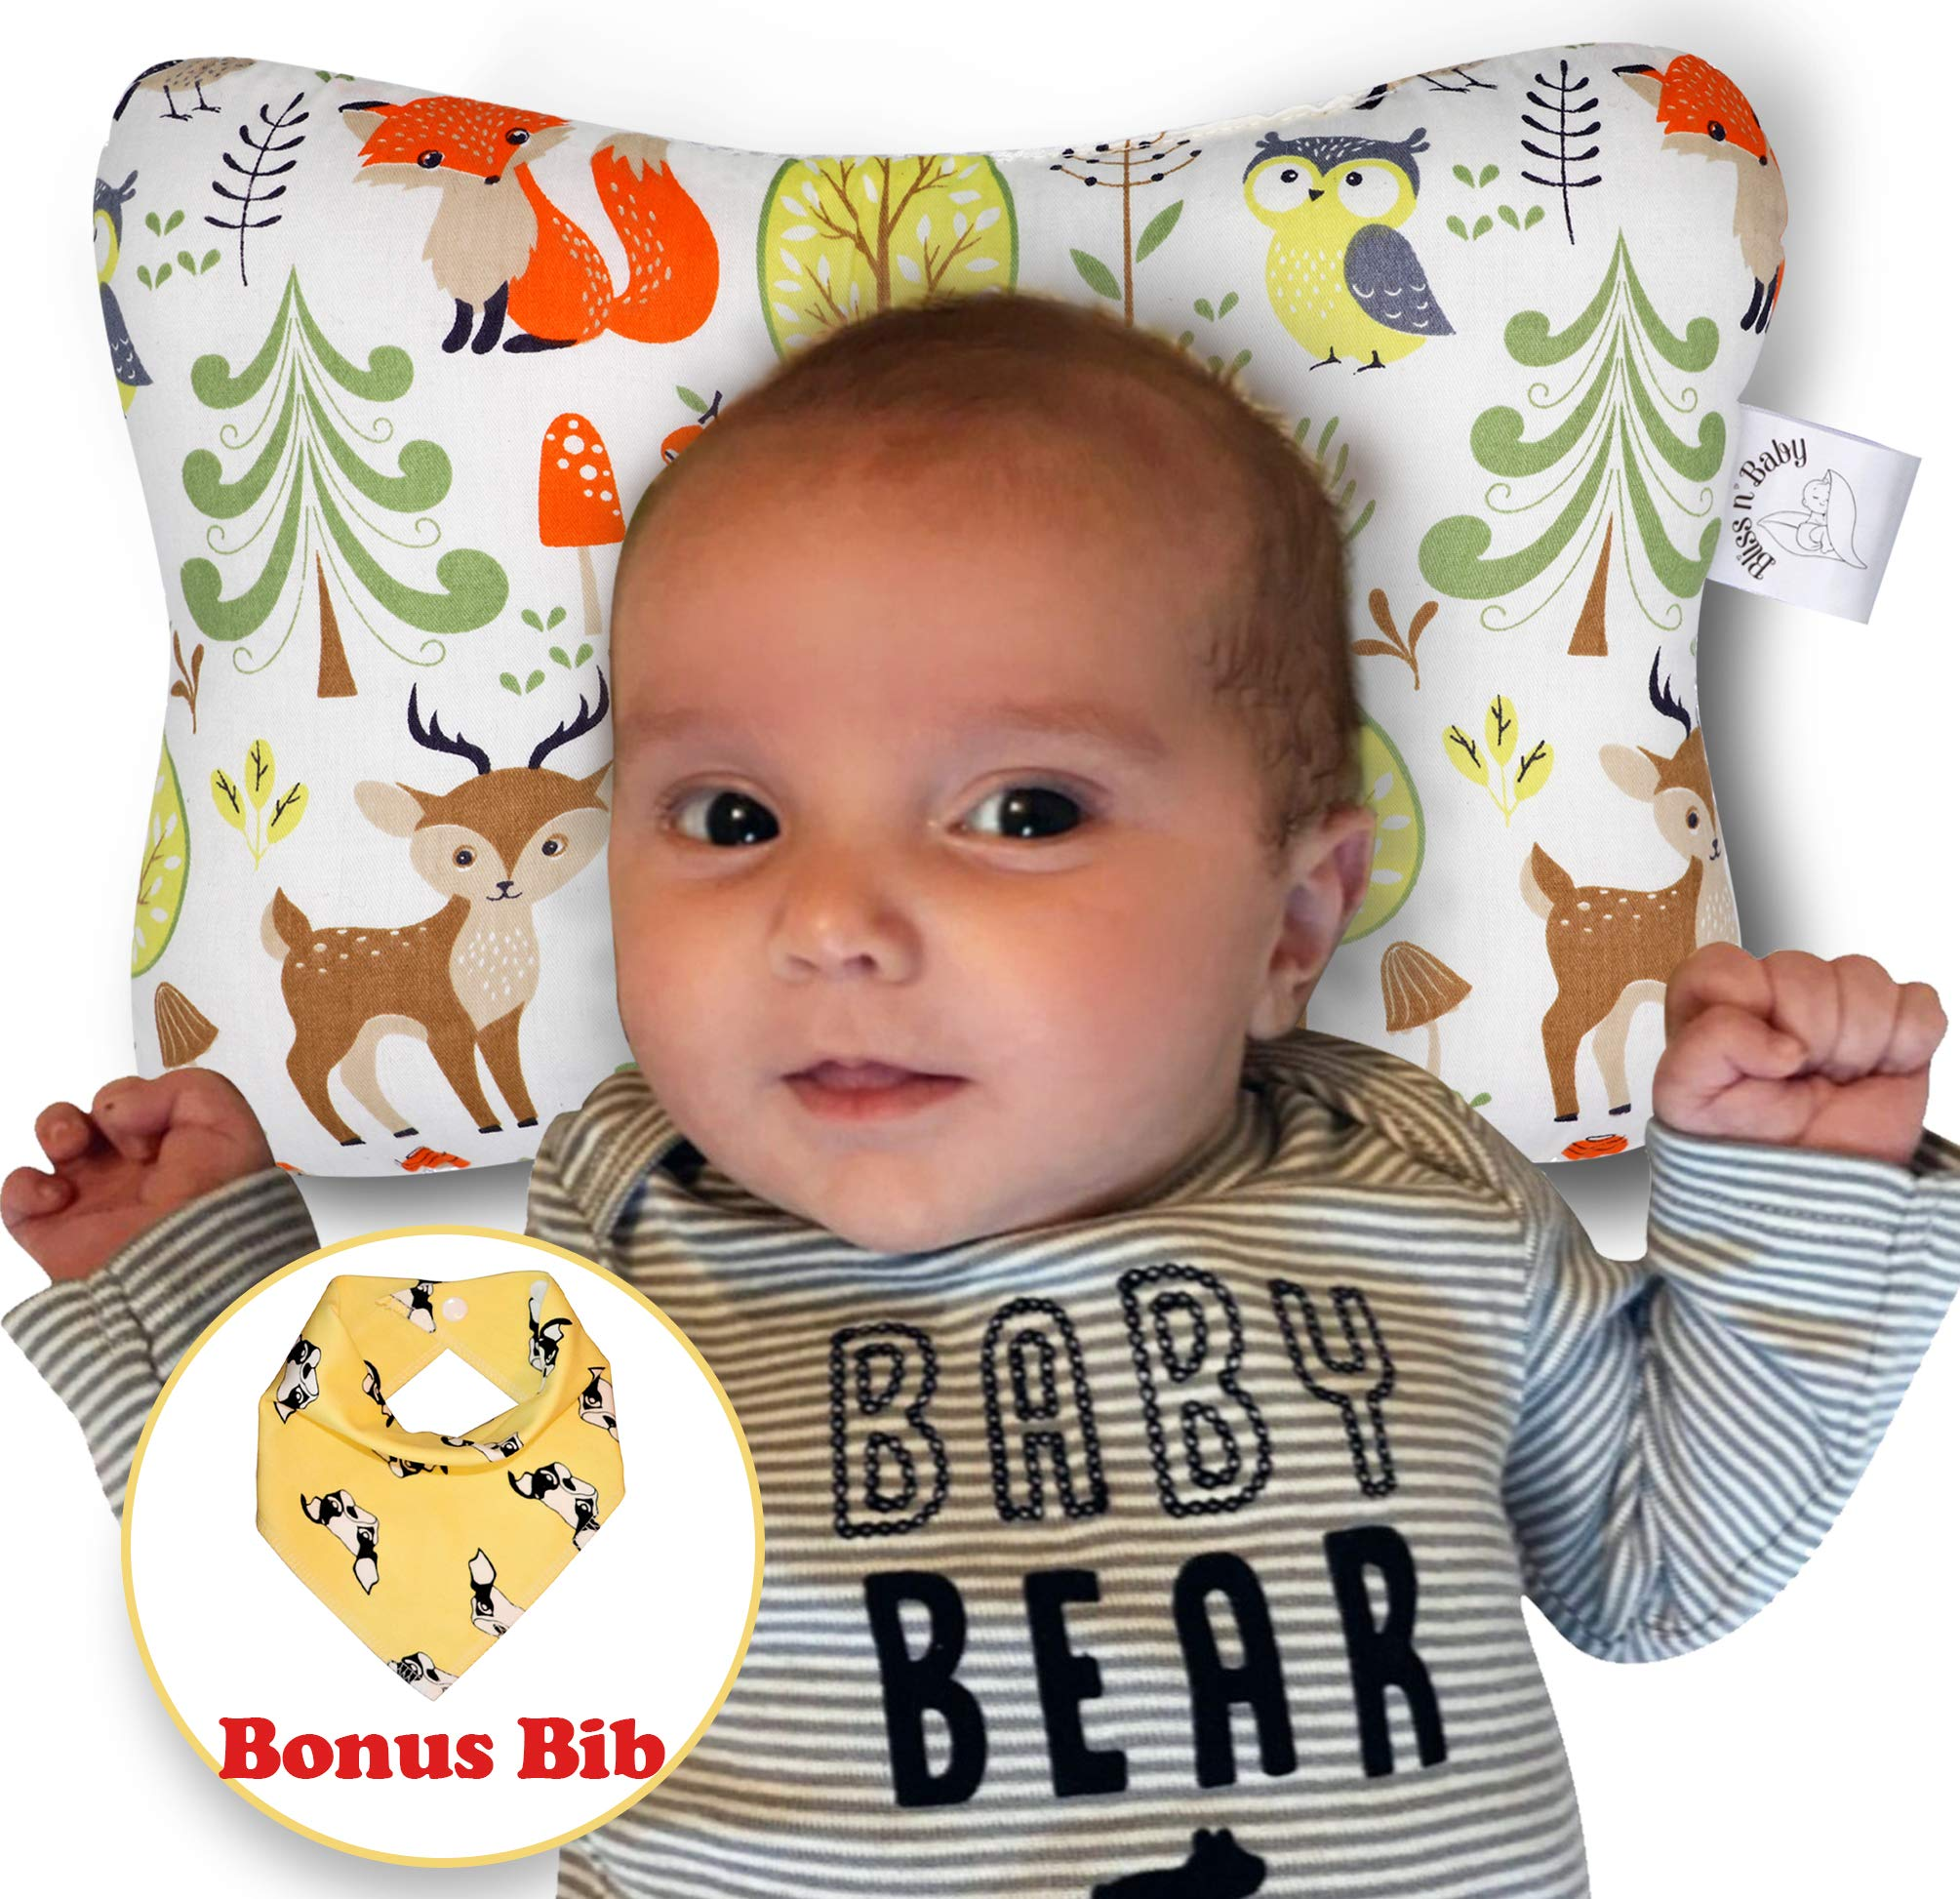 Baby Head Shaping Pillow Bib Shower Gift Set 3D Breathable Air Mesh Neck Support Machine Washable /& Dry-able Flat Head /& Reflux Prevention for Newborn Infants Organic Cotton Hypoallergenic